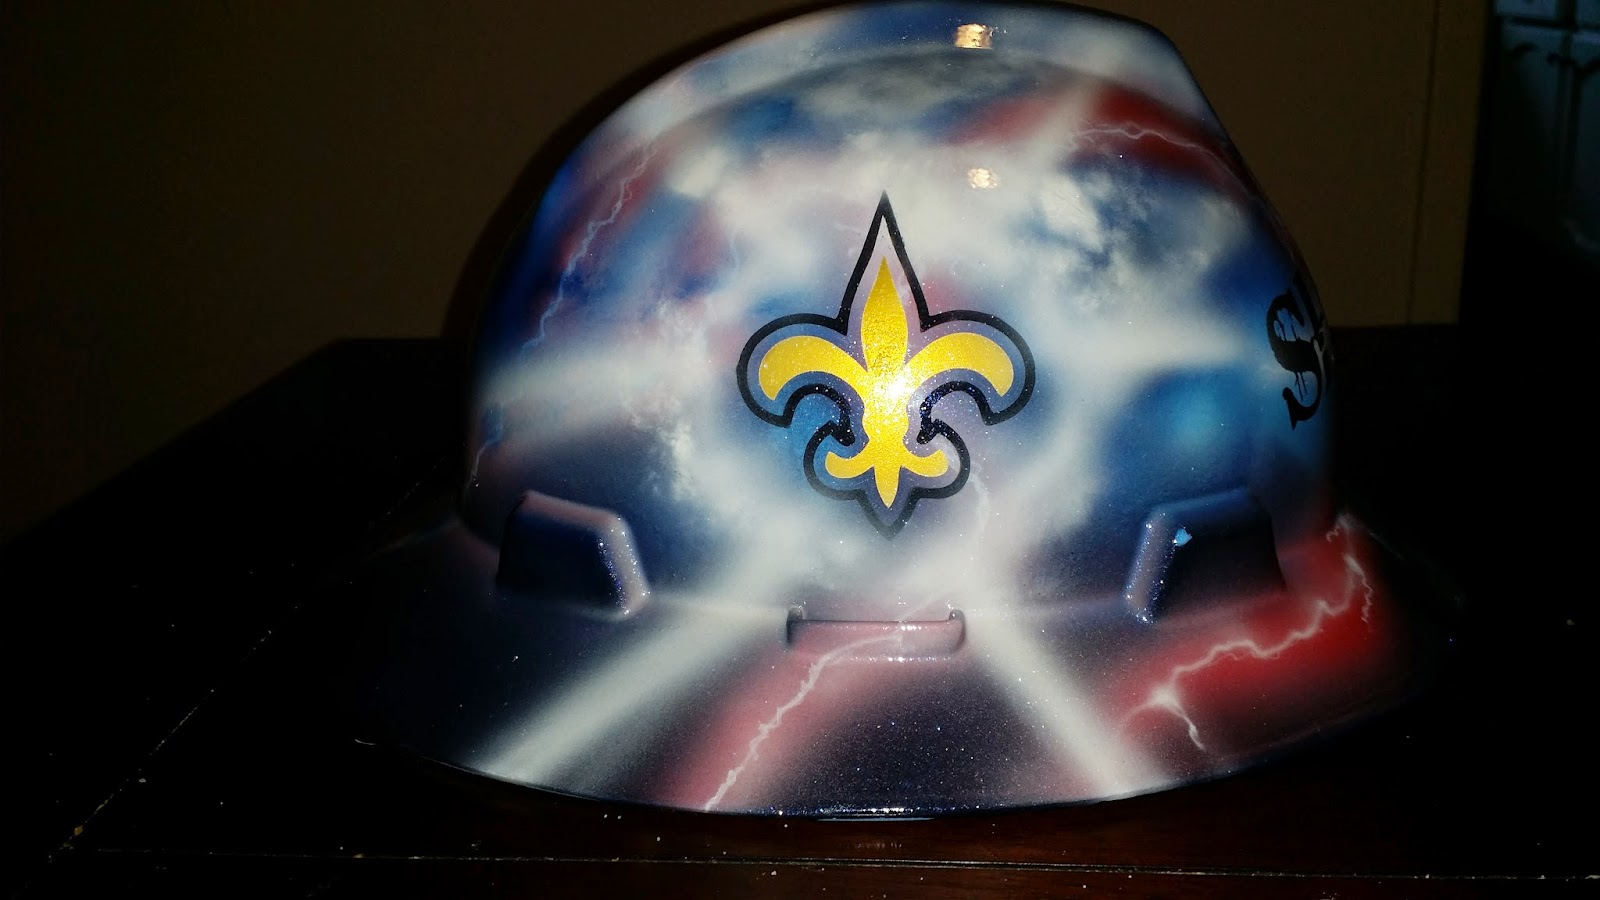 custom designed hard hat with New Orleans Saints coming through the storm